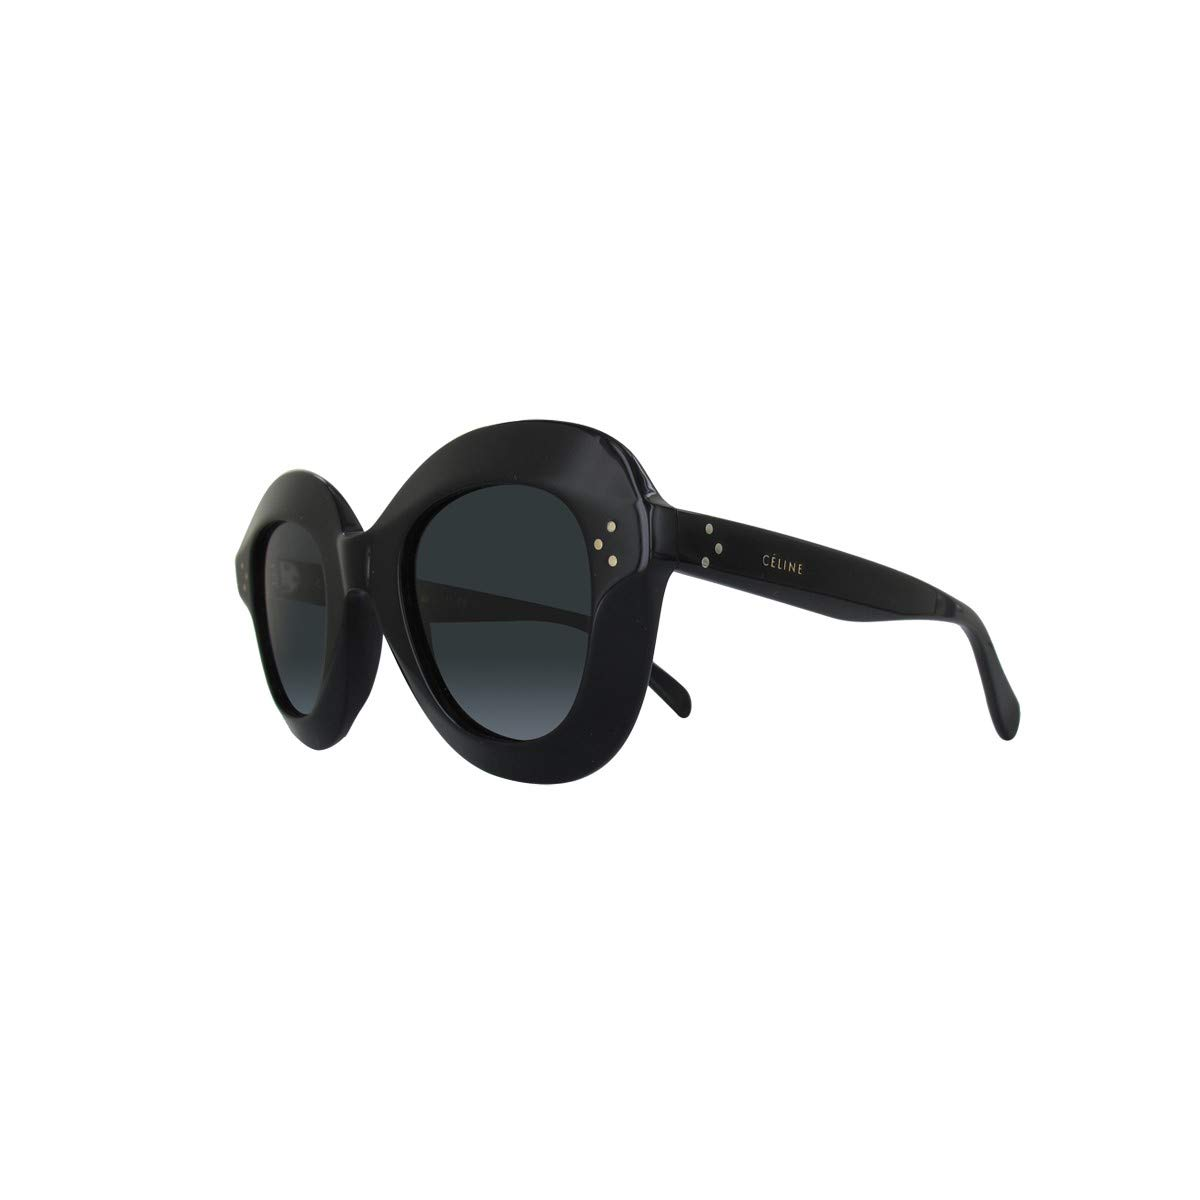 c4cd3418131a0 Celine CL41445 S 807 Black Lola Round Sunglasses Lens Category 3 Size 46mm  at Amazon Men s Clothing store